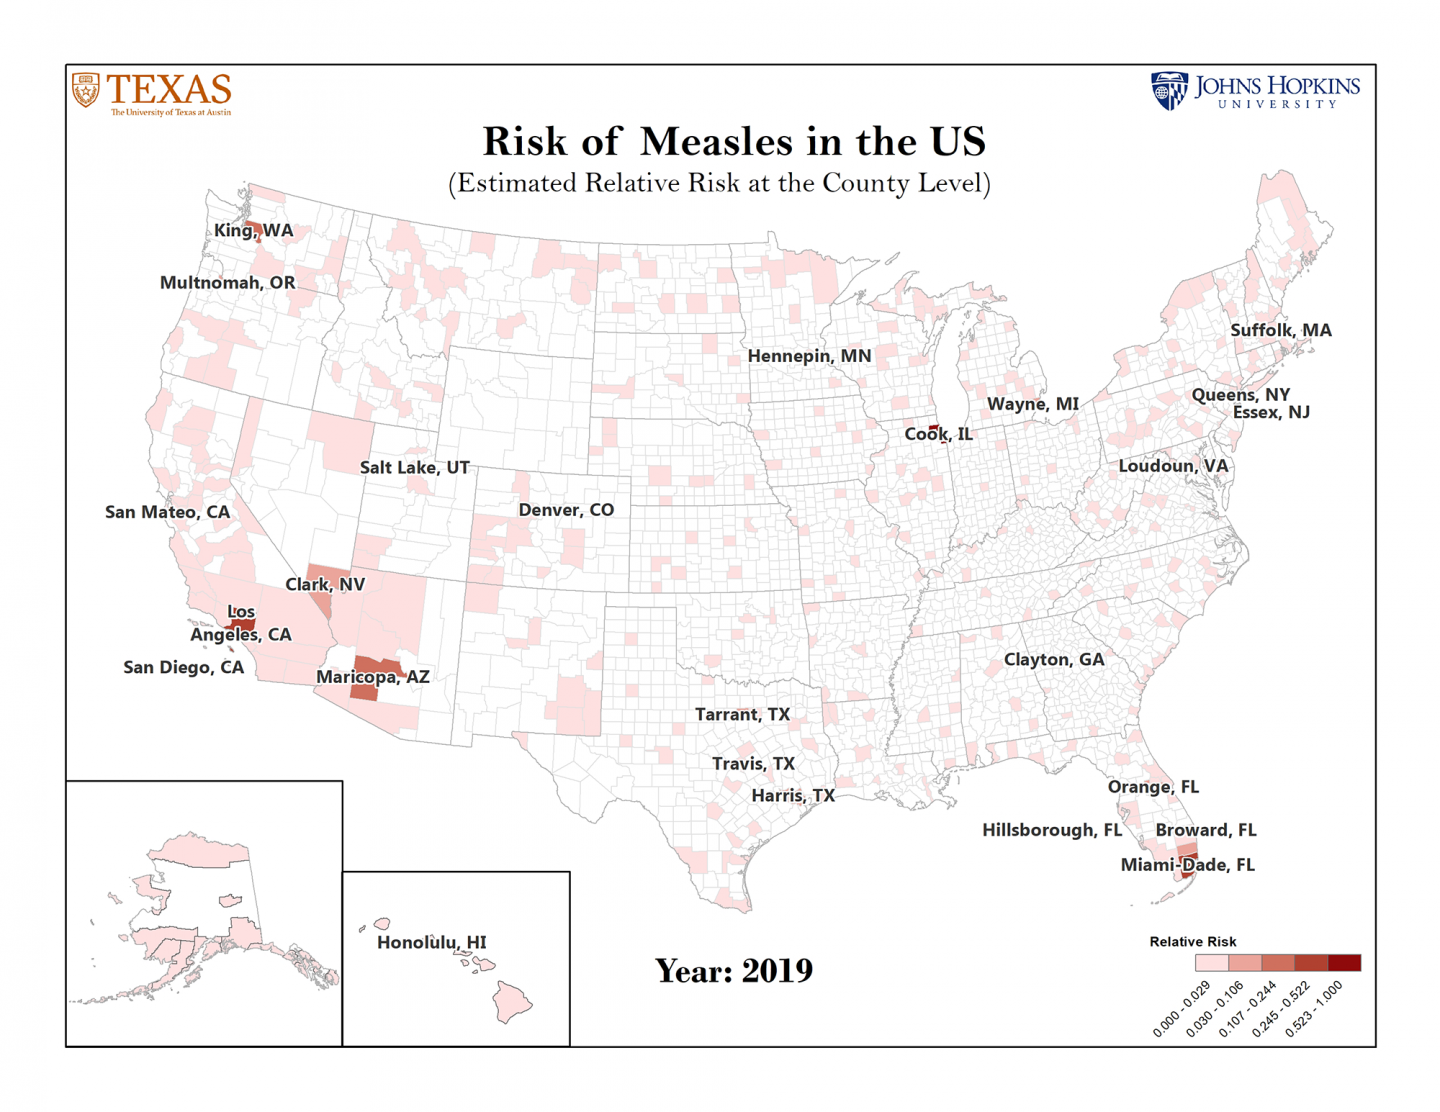 Map of U.S. counties shaded according to their level of risk